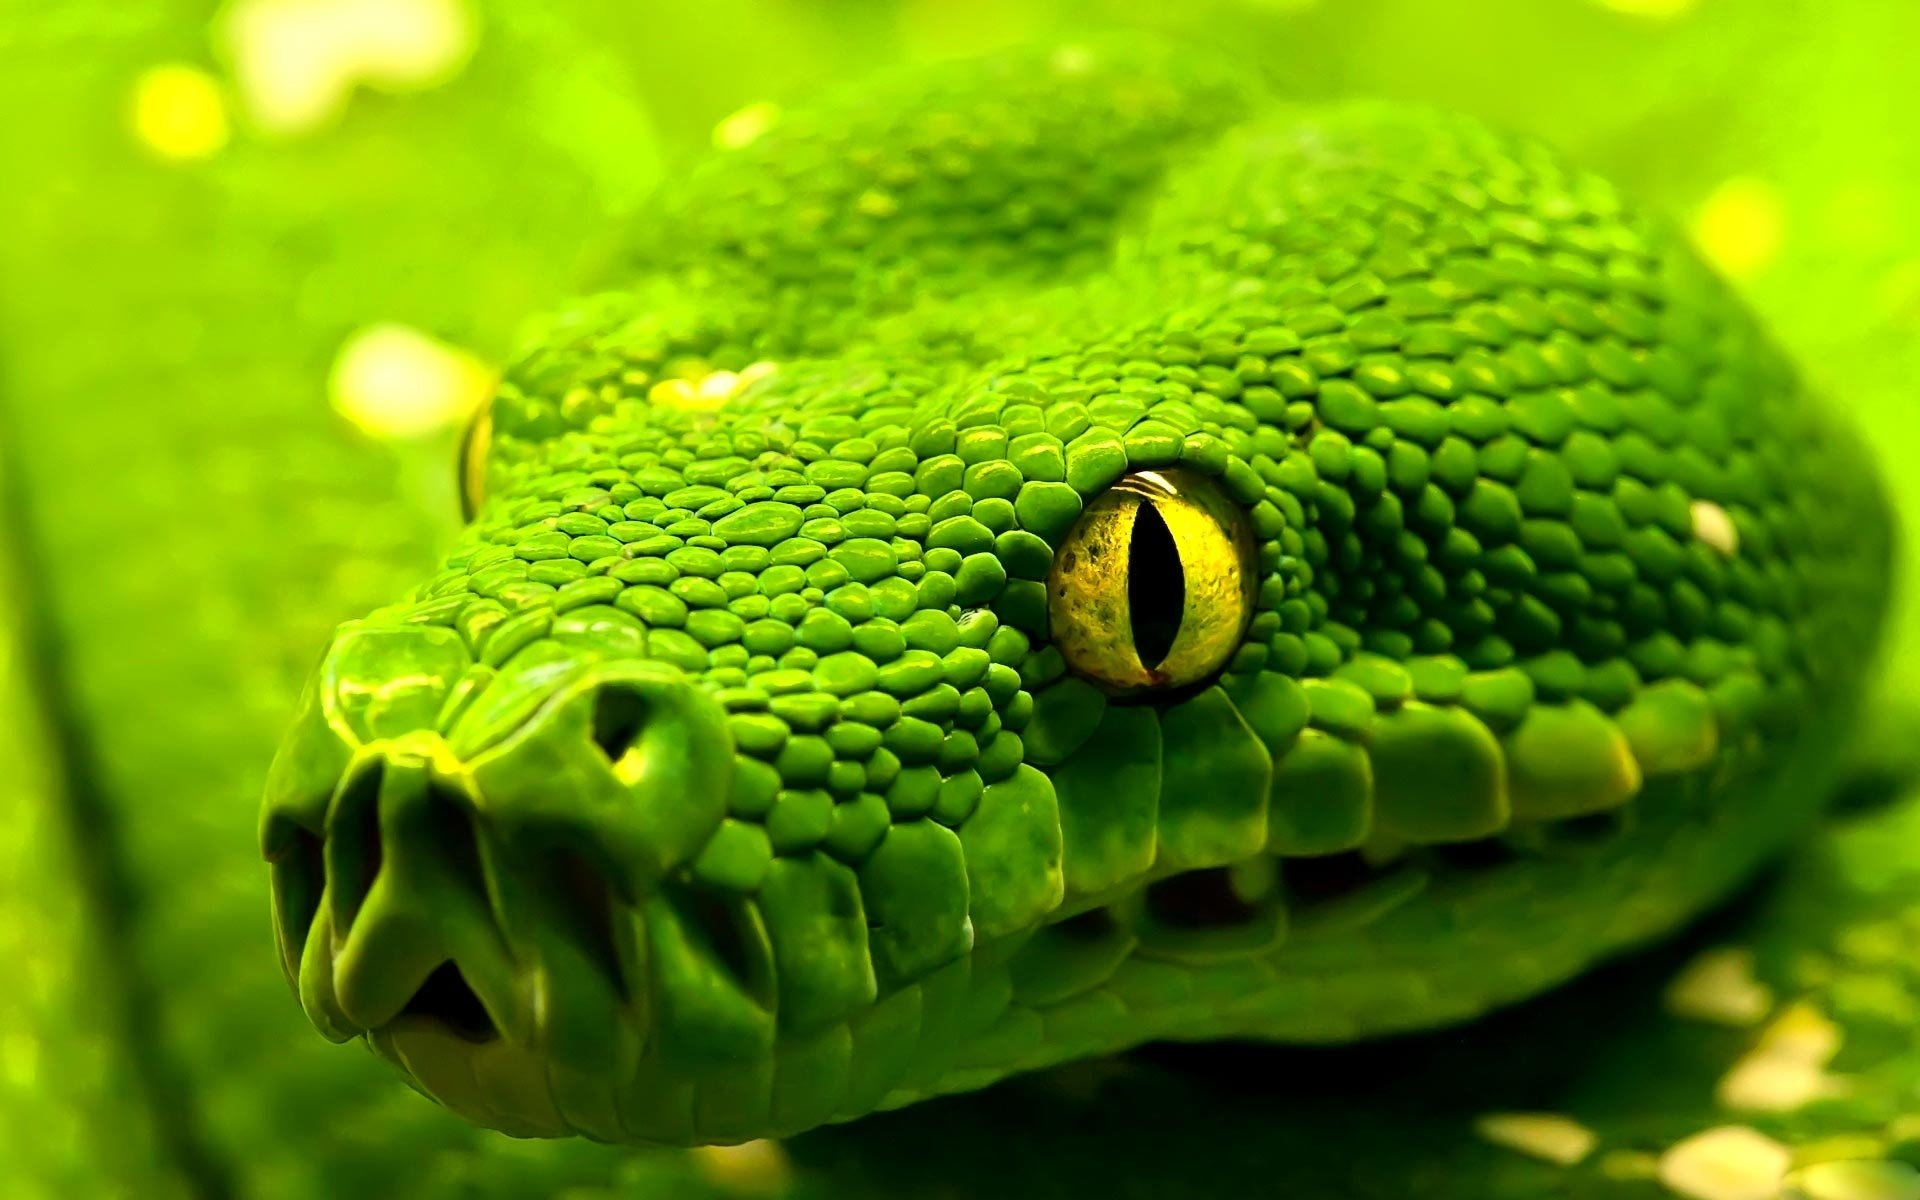 301 snake hd wallpapers | backgrounds - wallpaper abyss